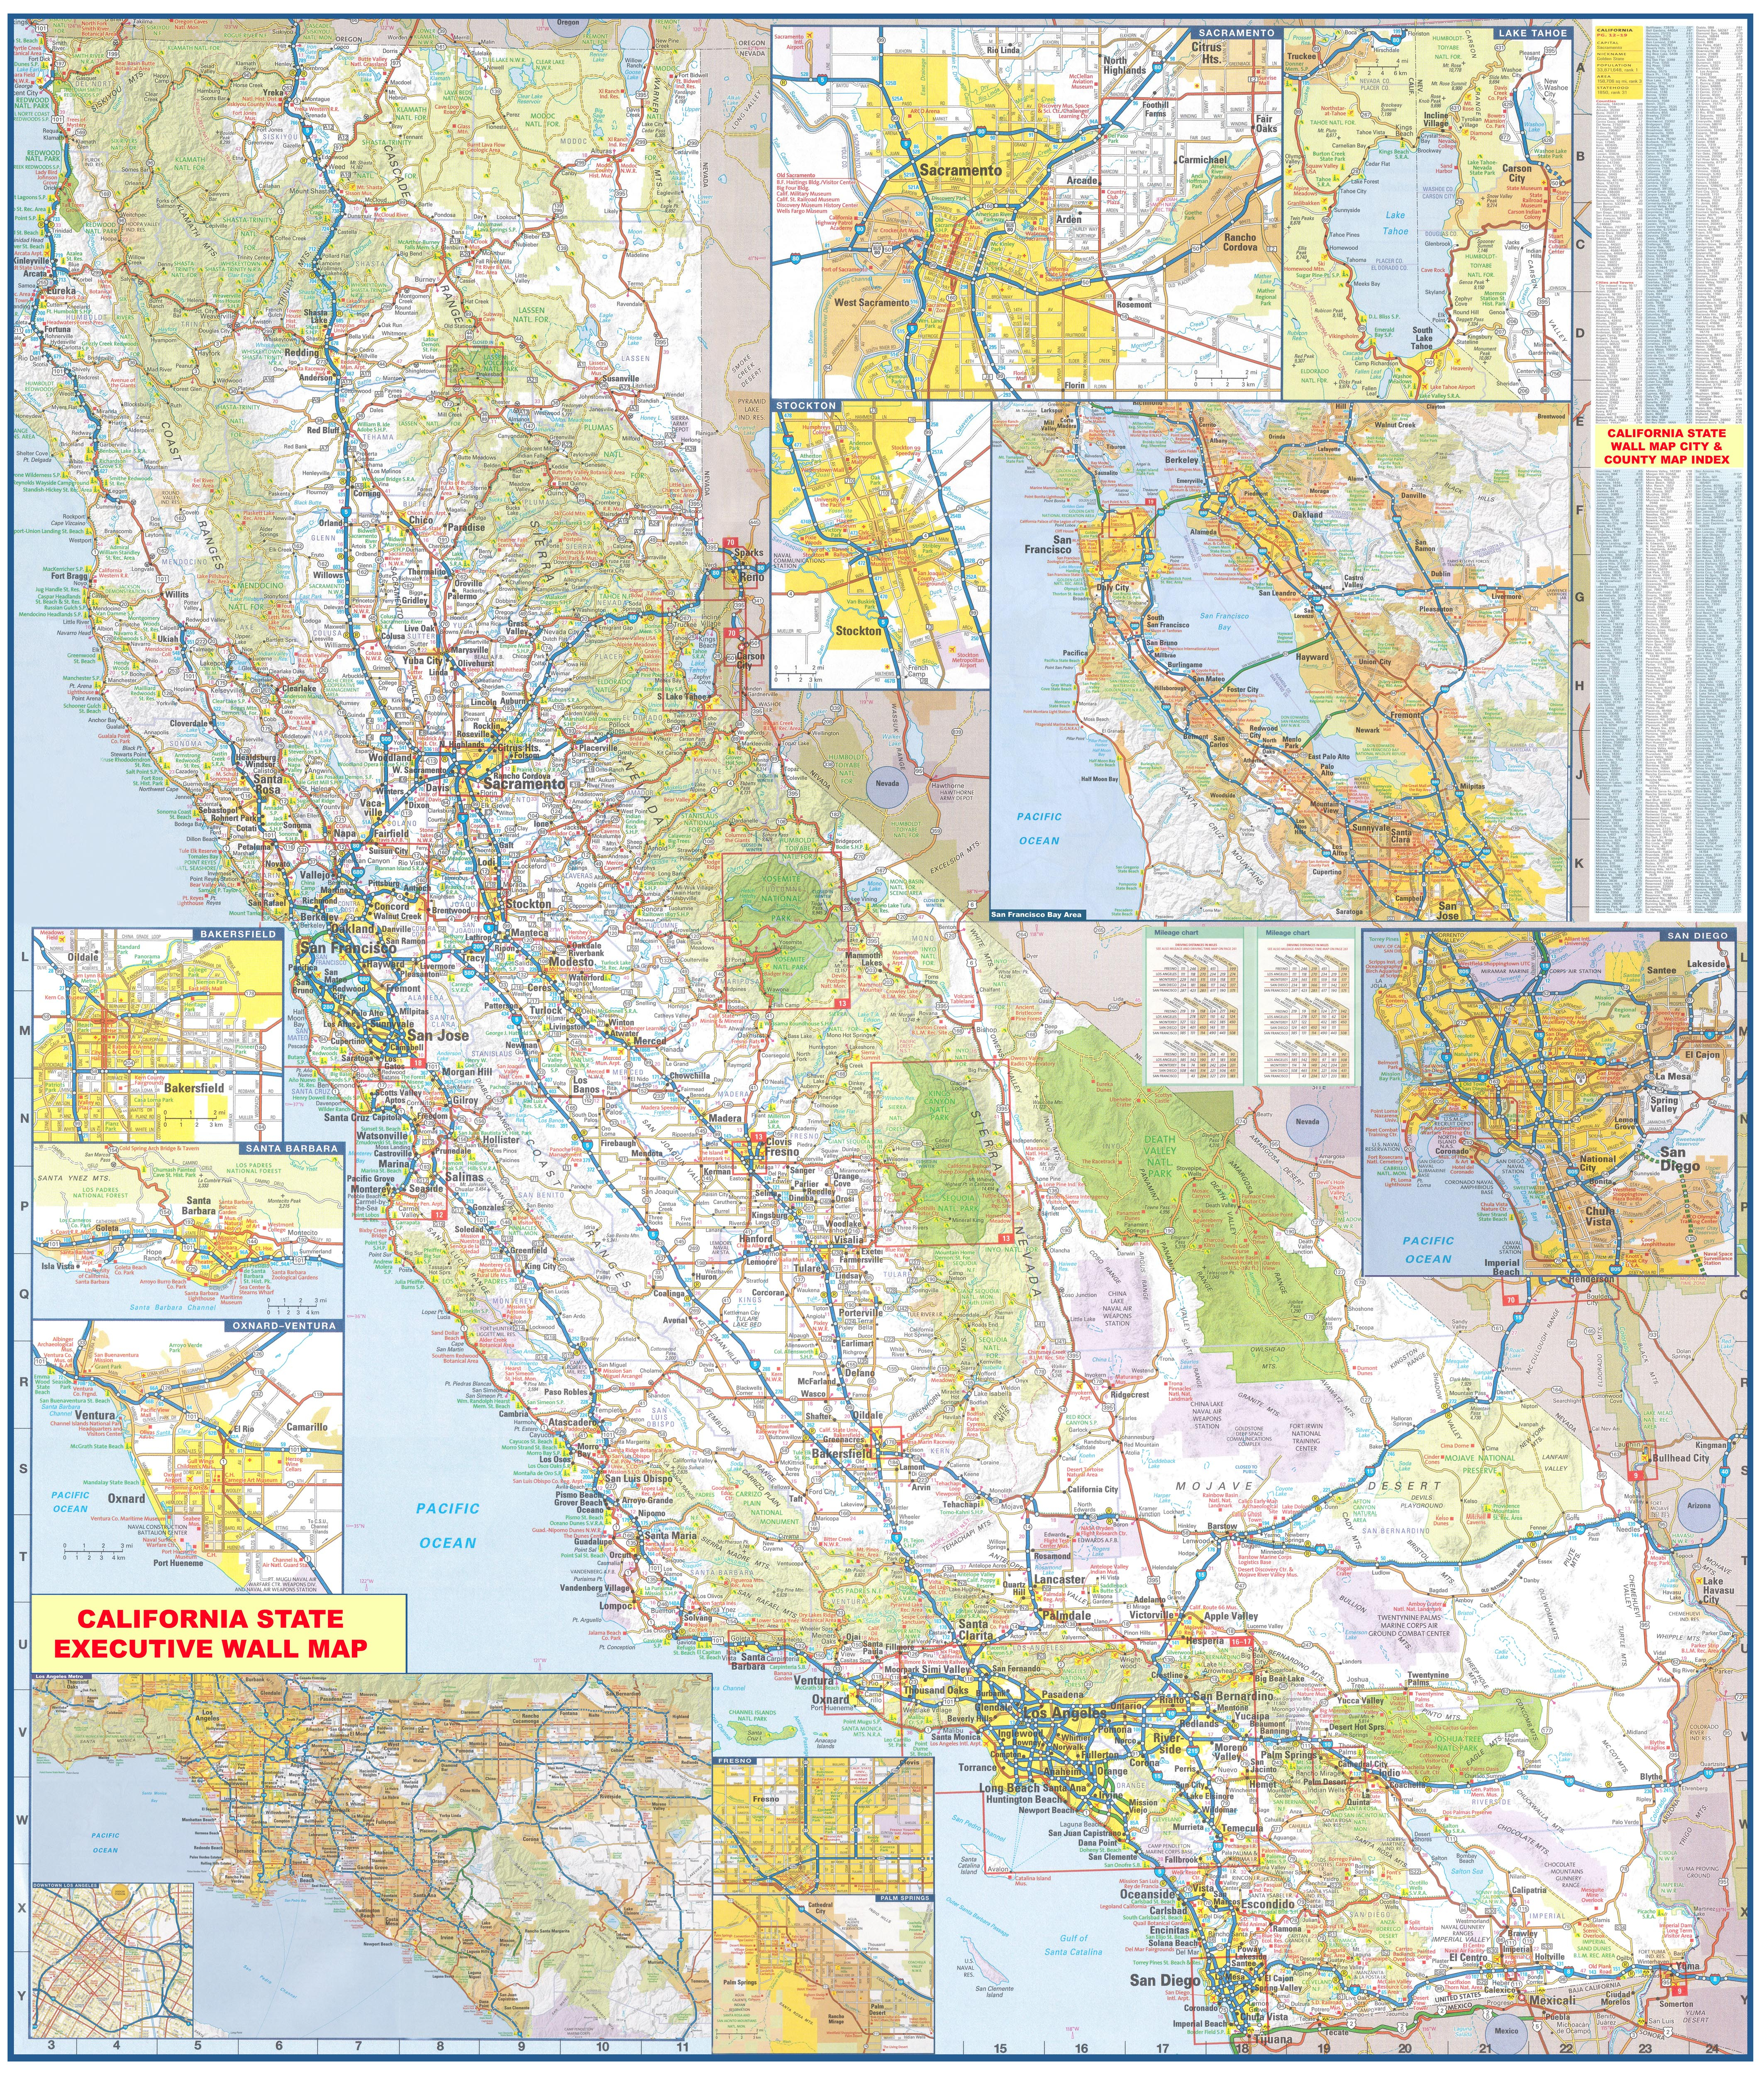 California Wall Map Executive Commercial Edition - Laminated California Map